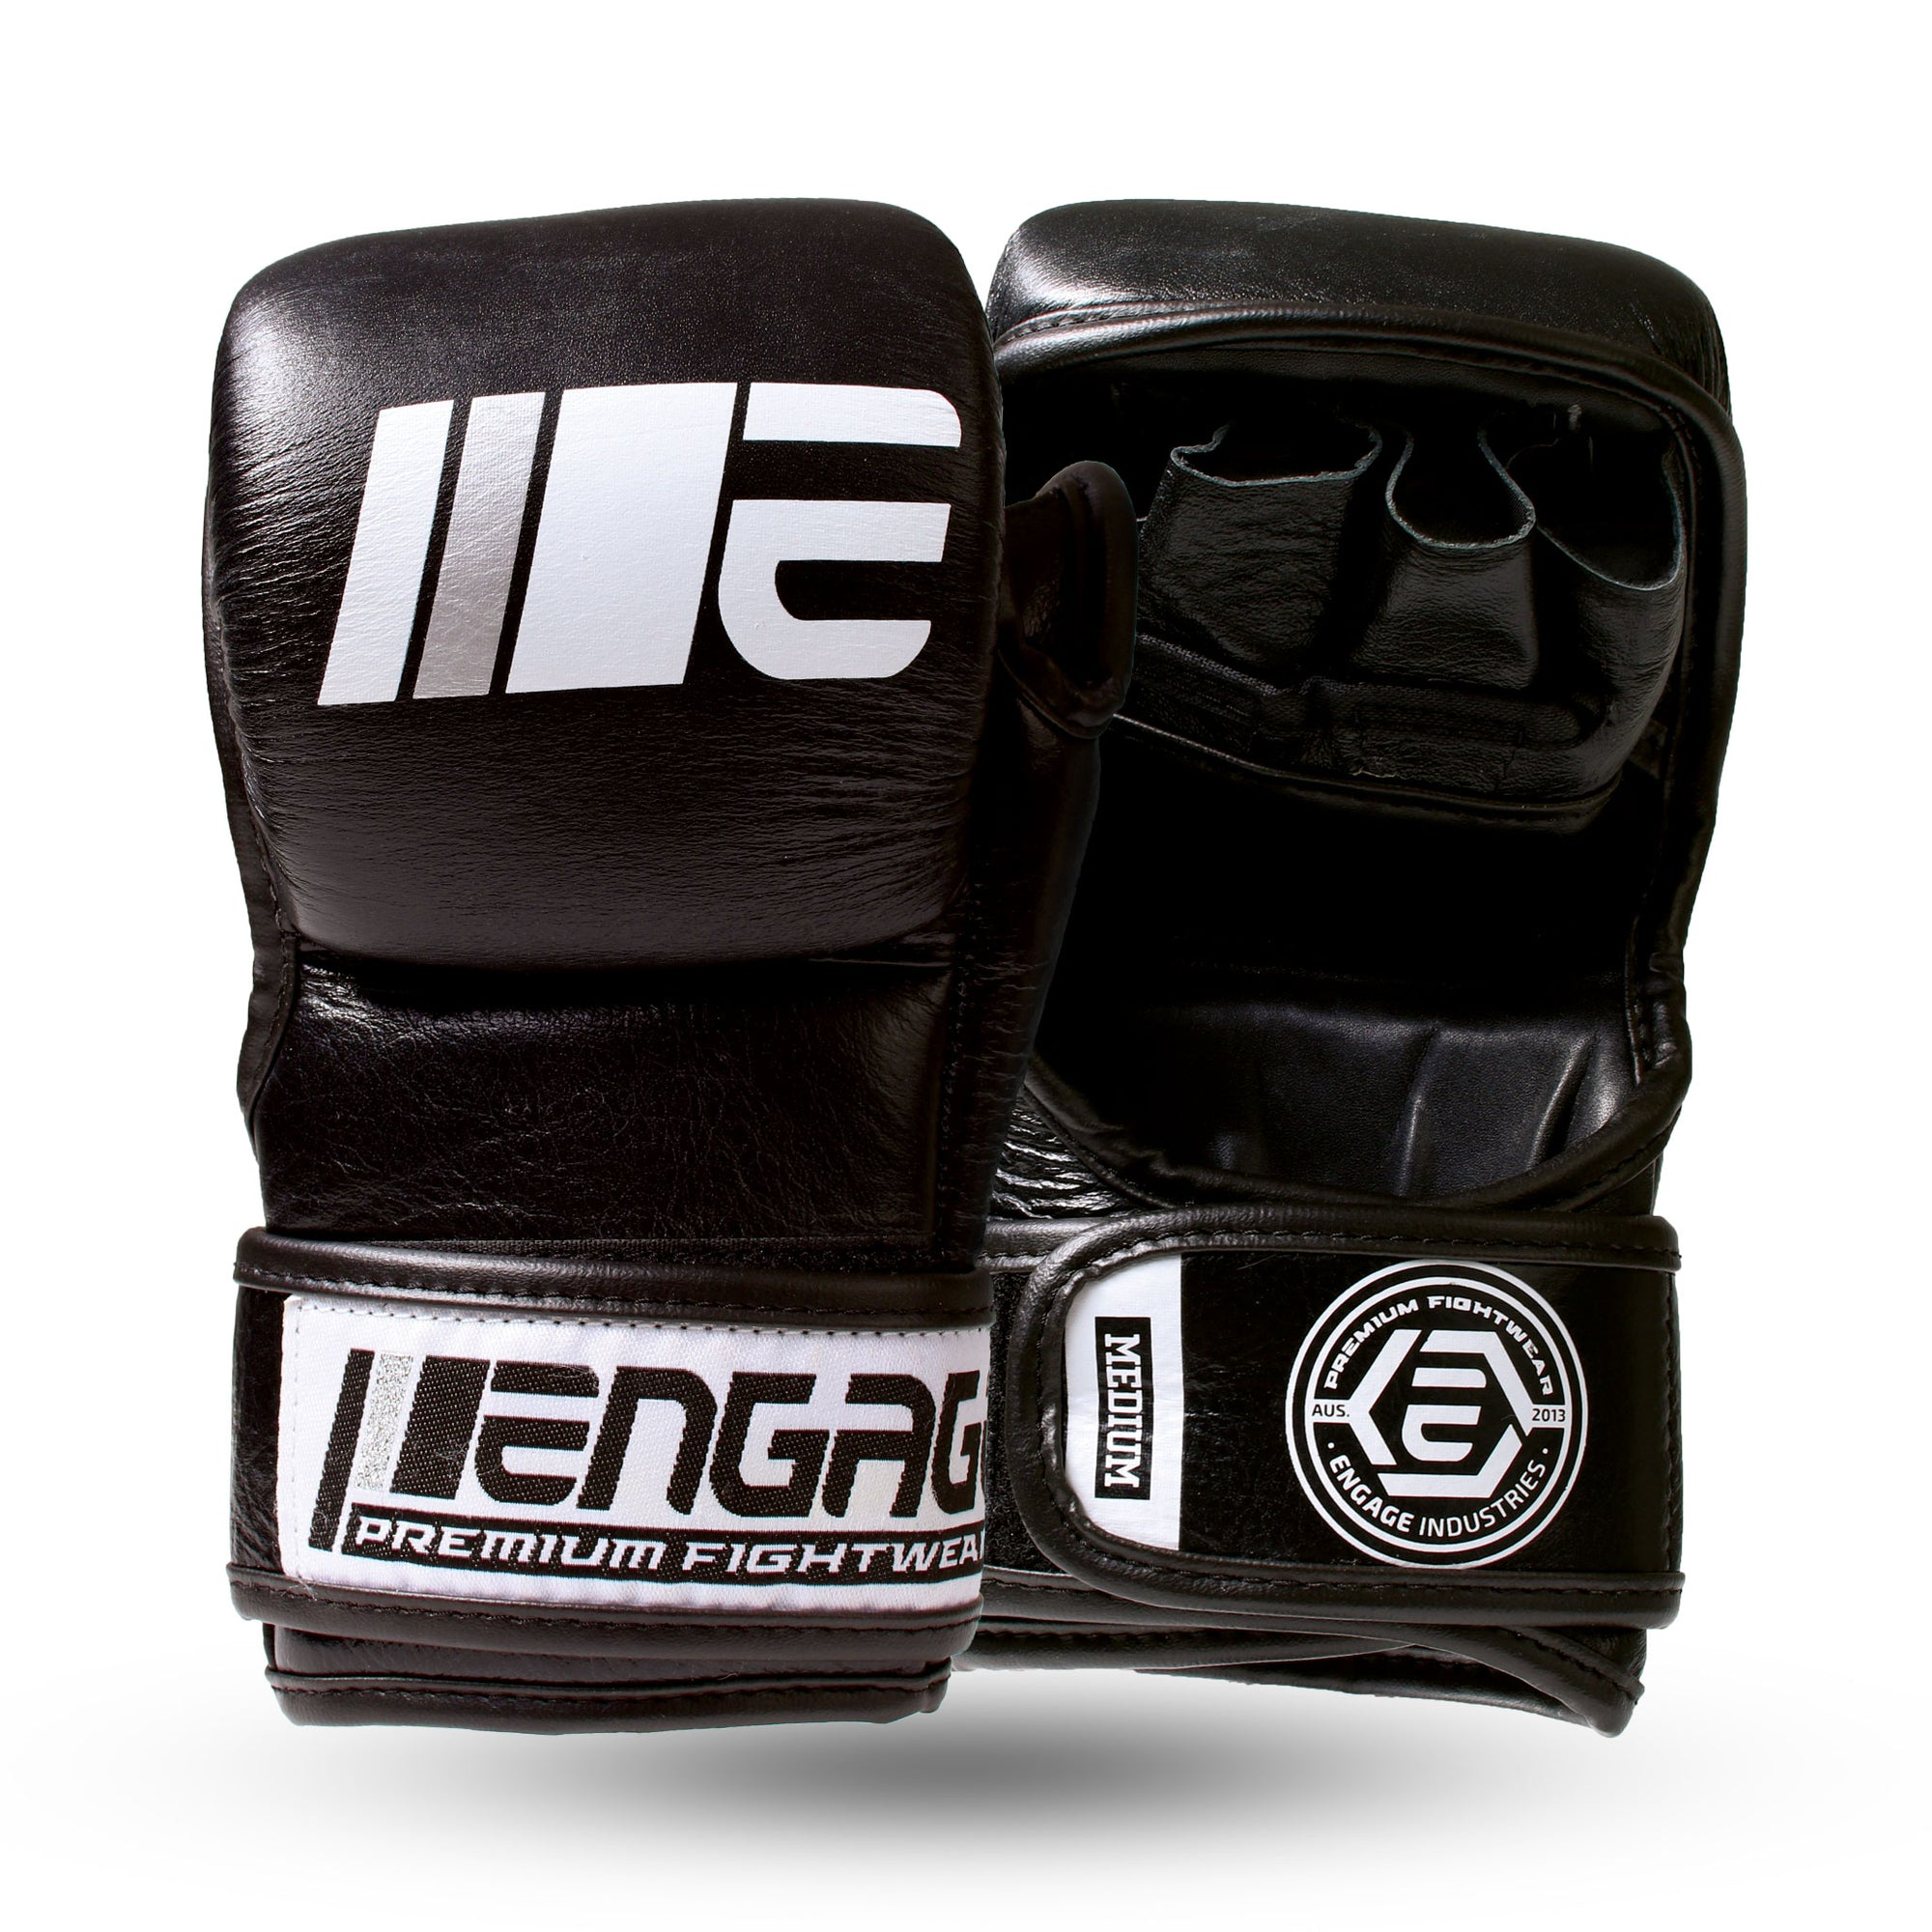 Z - Engage Knights MMA Gloves